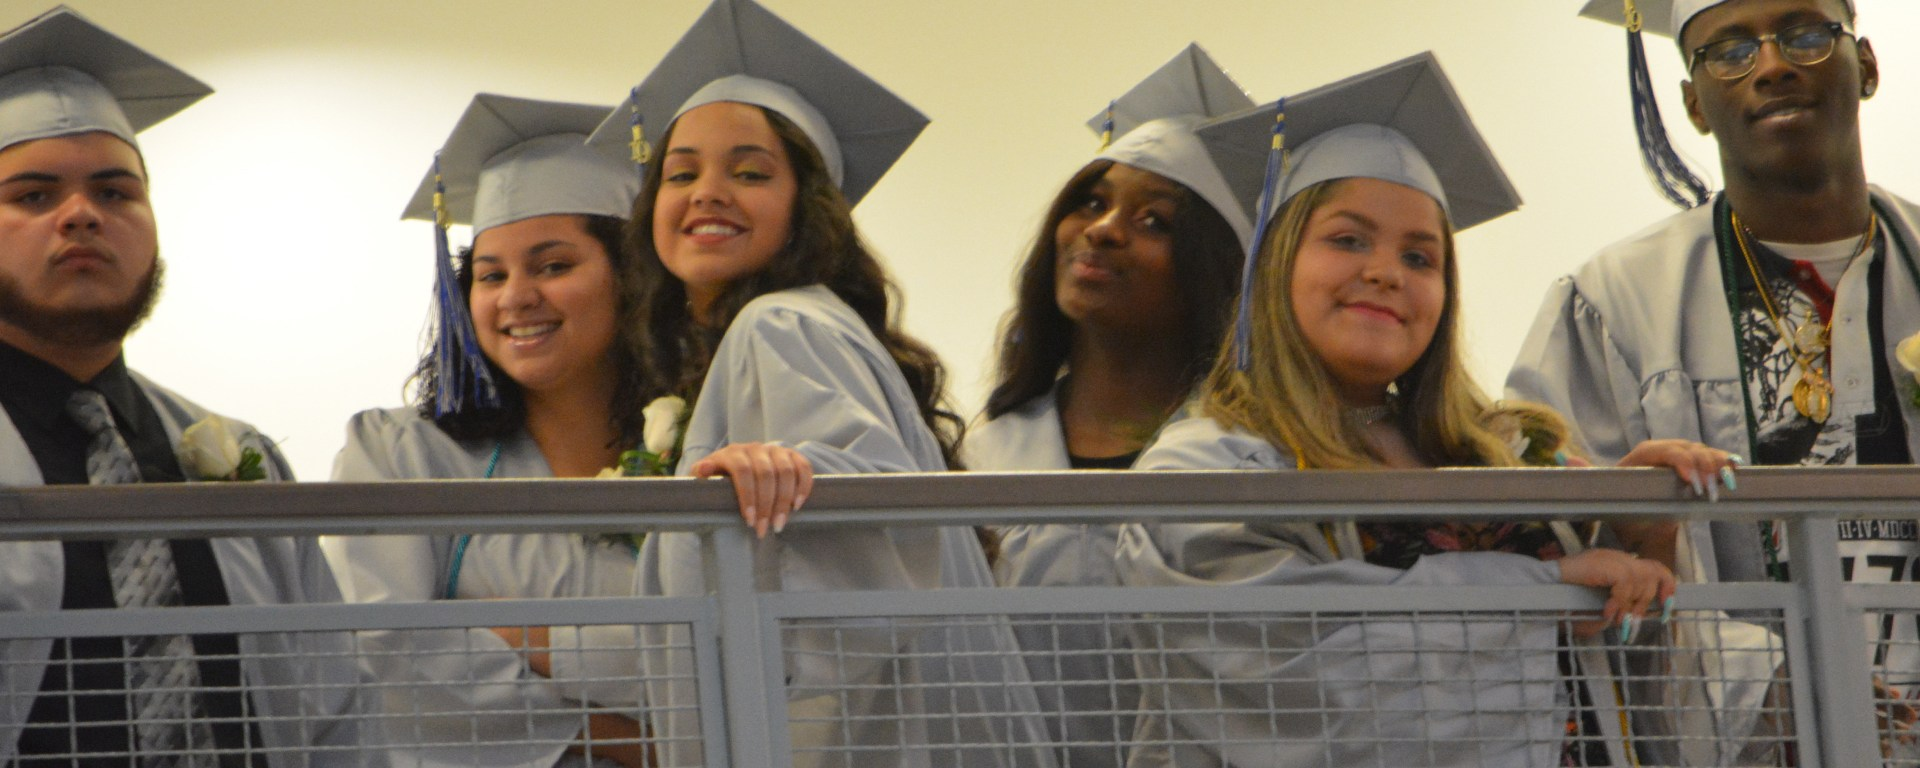 connecticut river academy graduation 2019